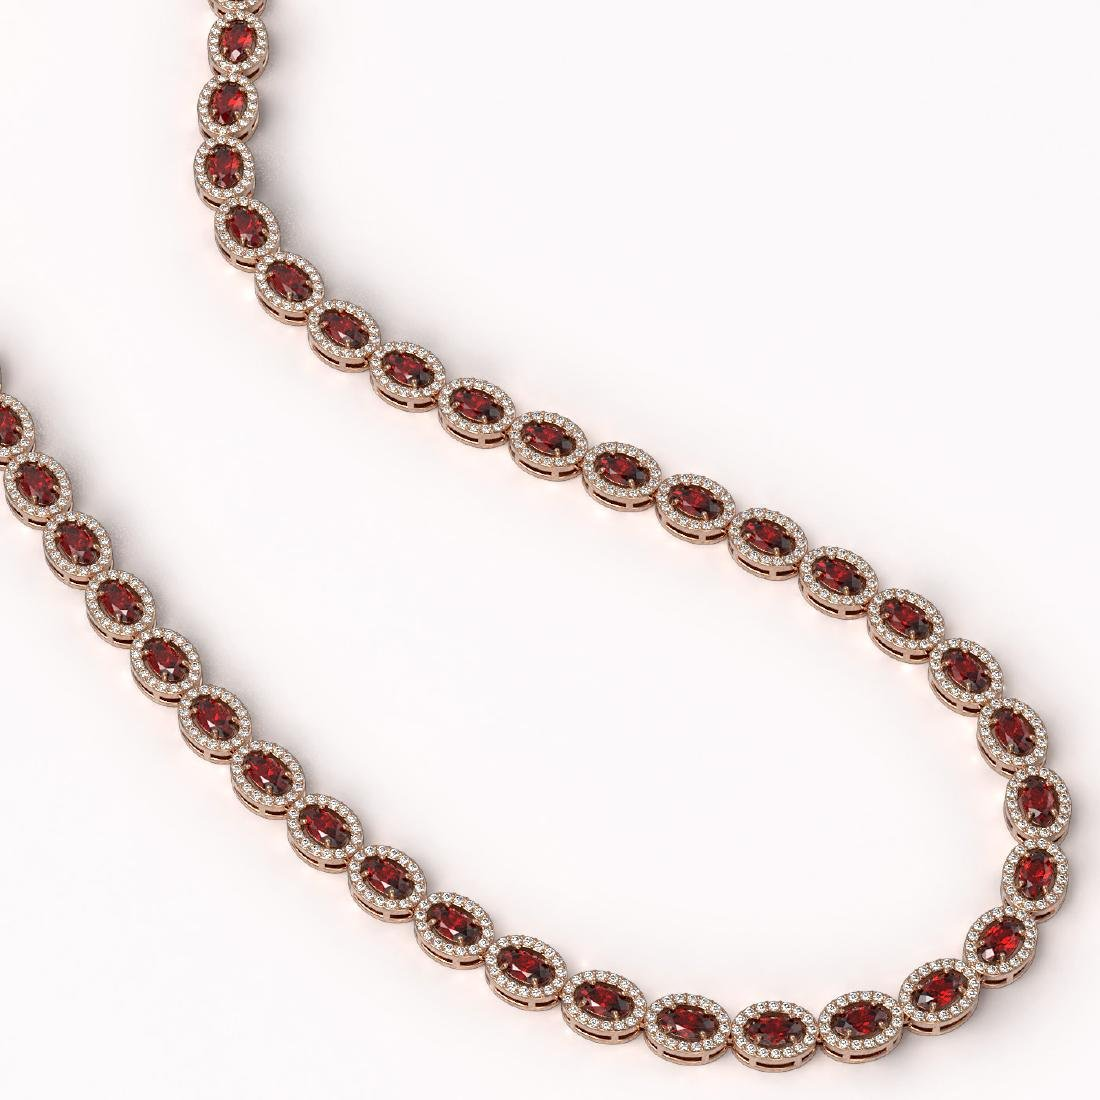 21.04 CTW Garnet & Diamond Halo Necklace 10K Rose Gold - 2